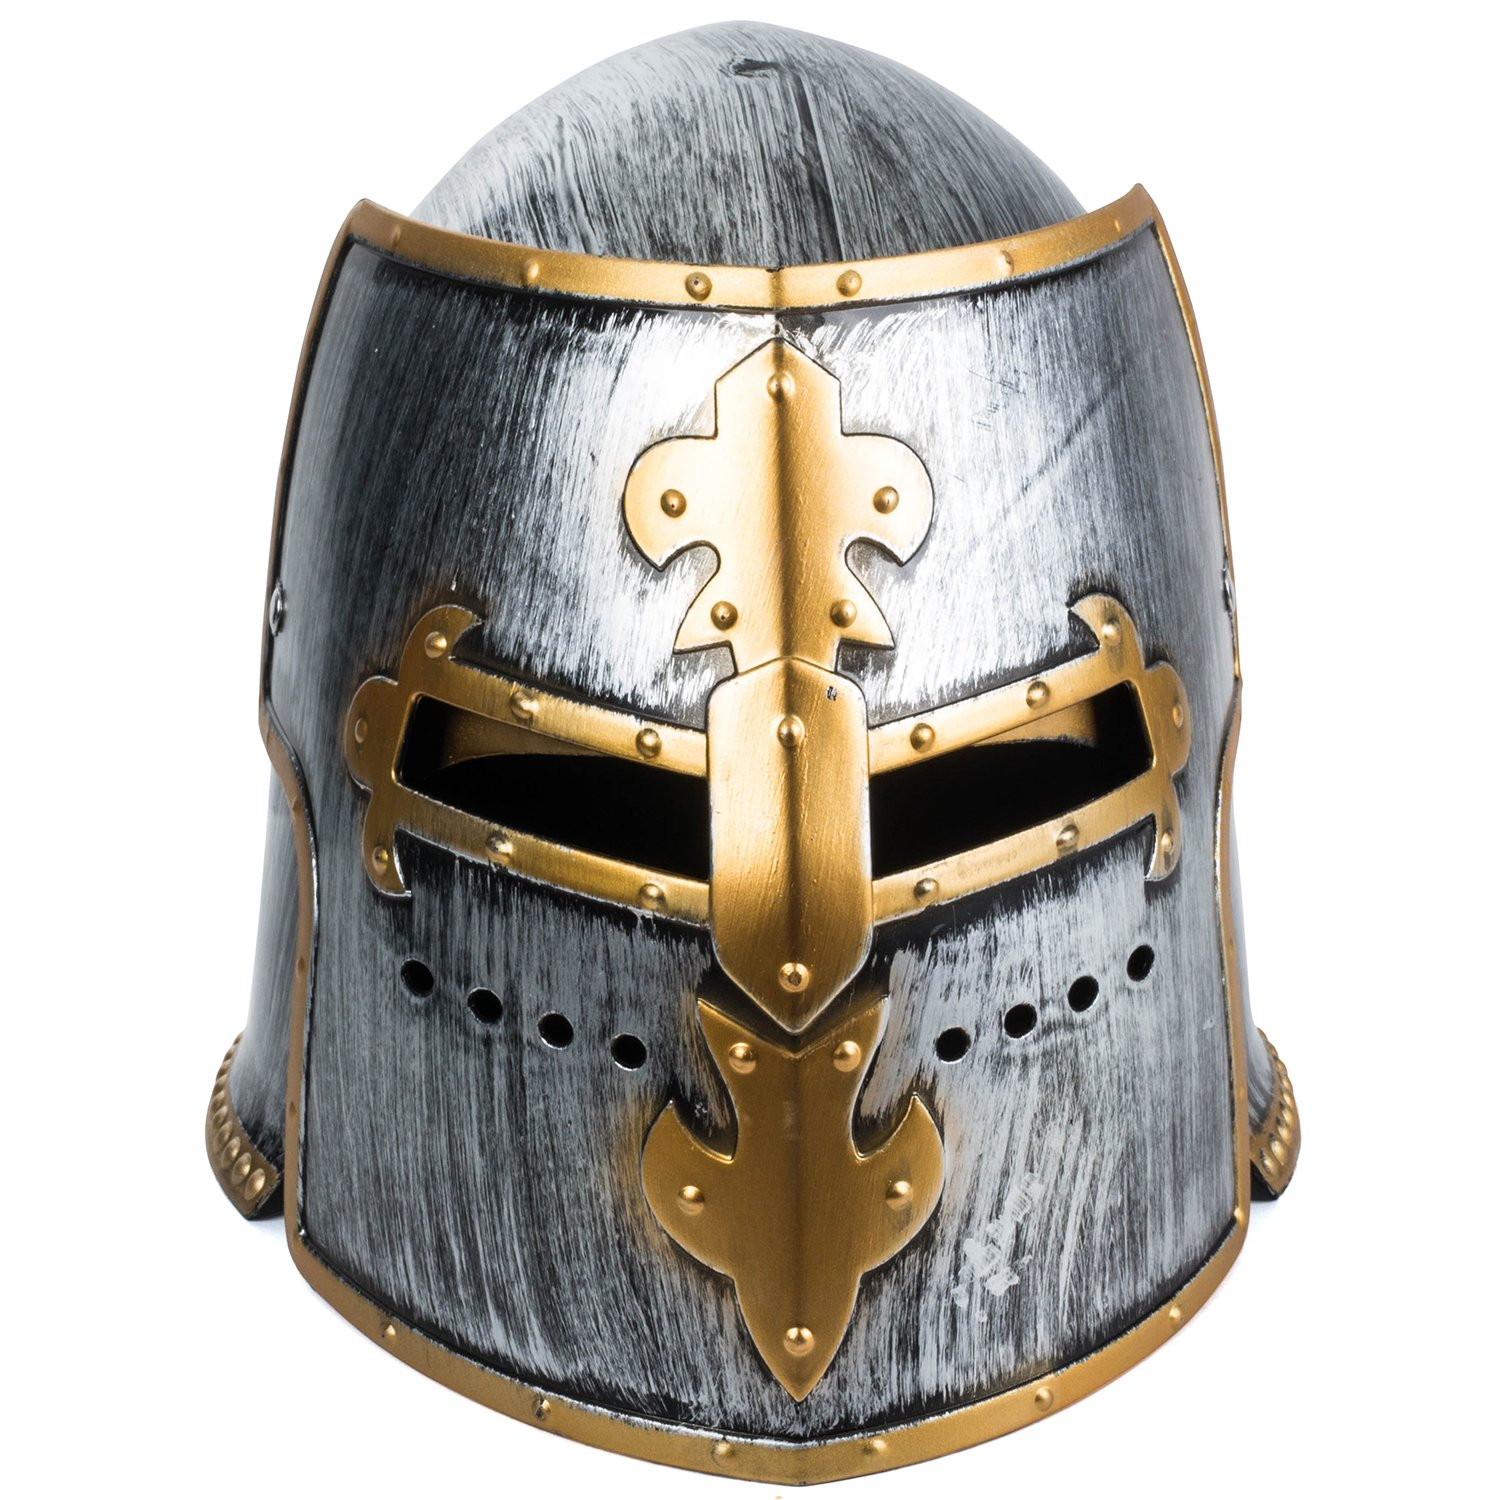 Tigerdoe Gladiator Costume - Helmet, Shield, Sword - Roman Armor - Knight - 3 Pc Set - Costumes for Men by Tigerdoe (Image #4)